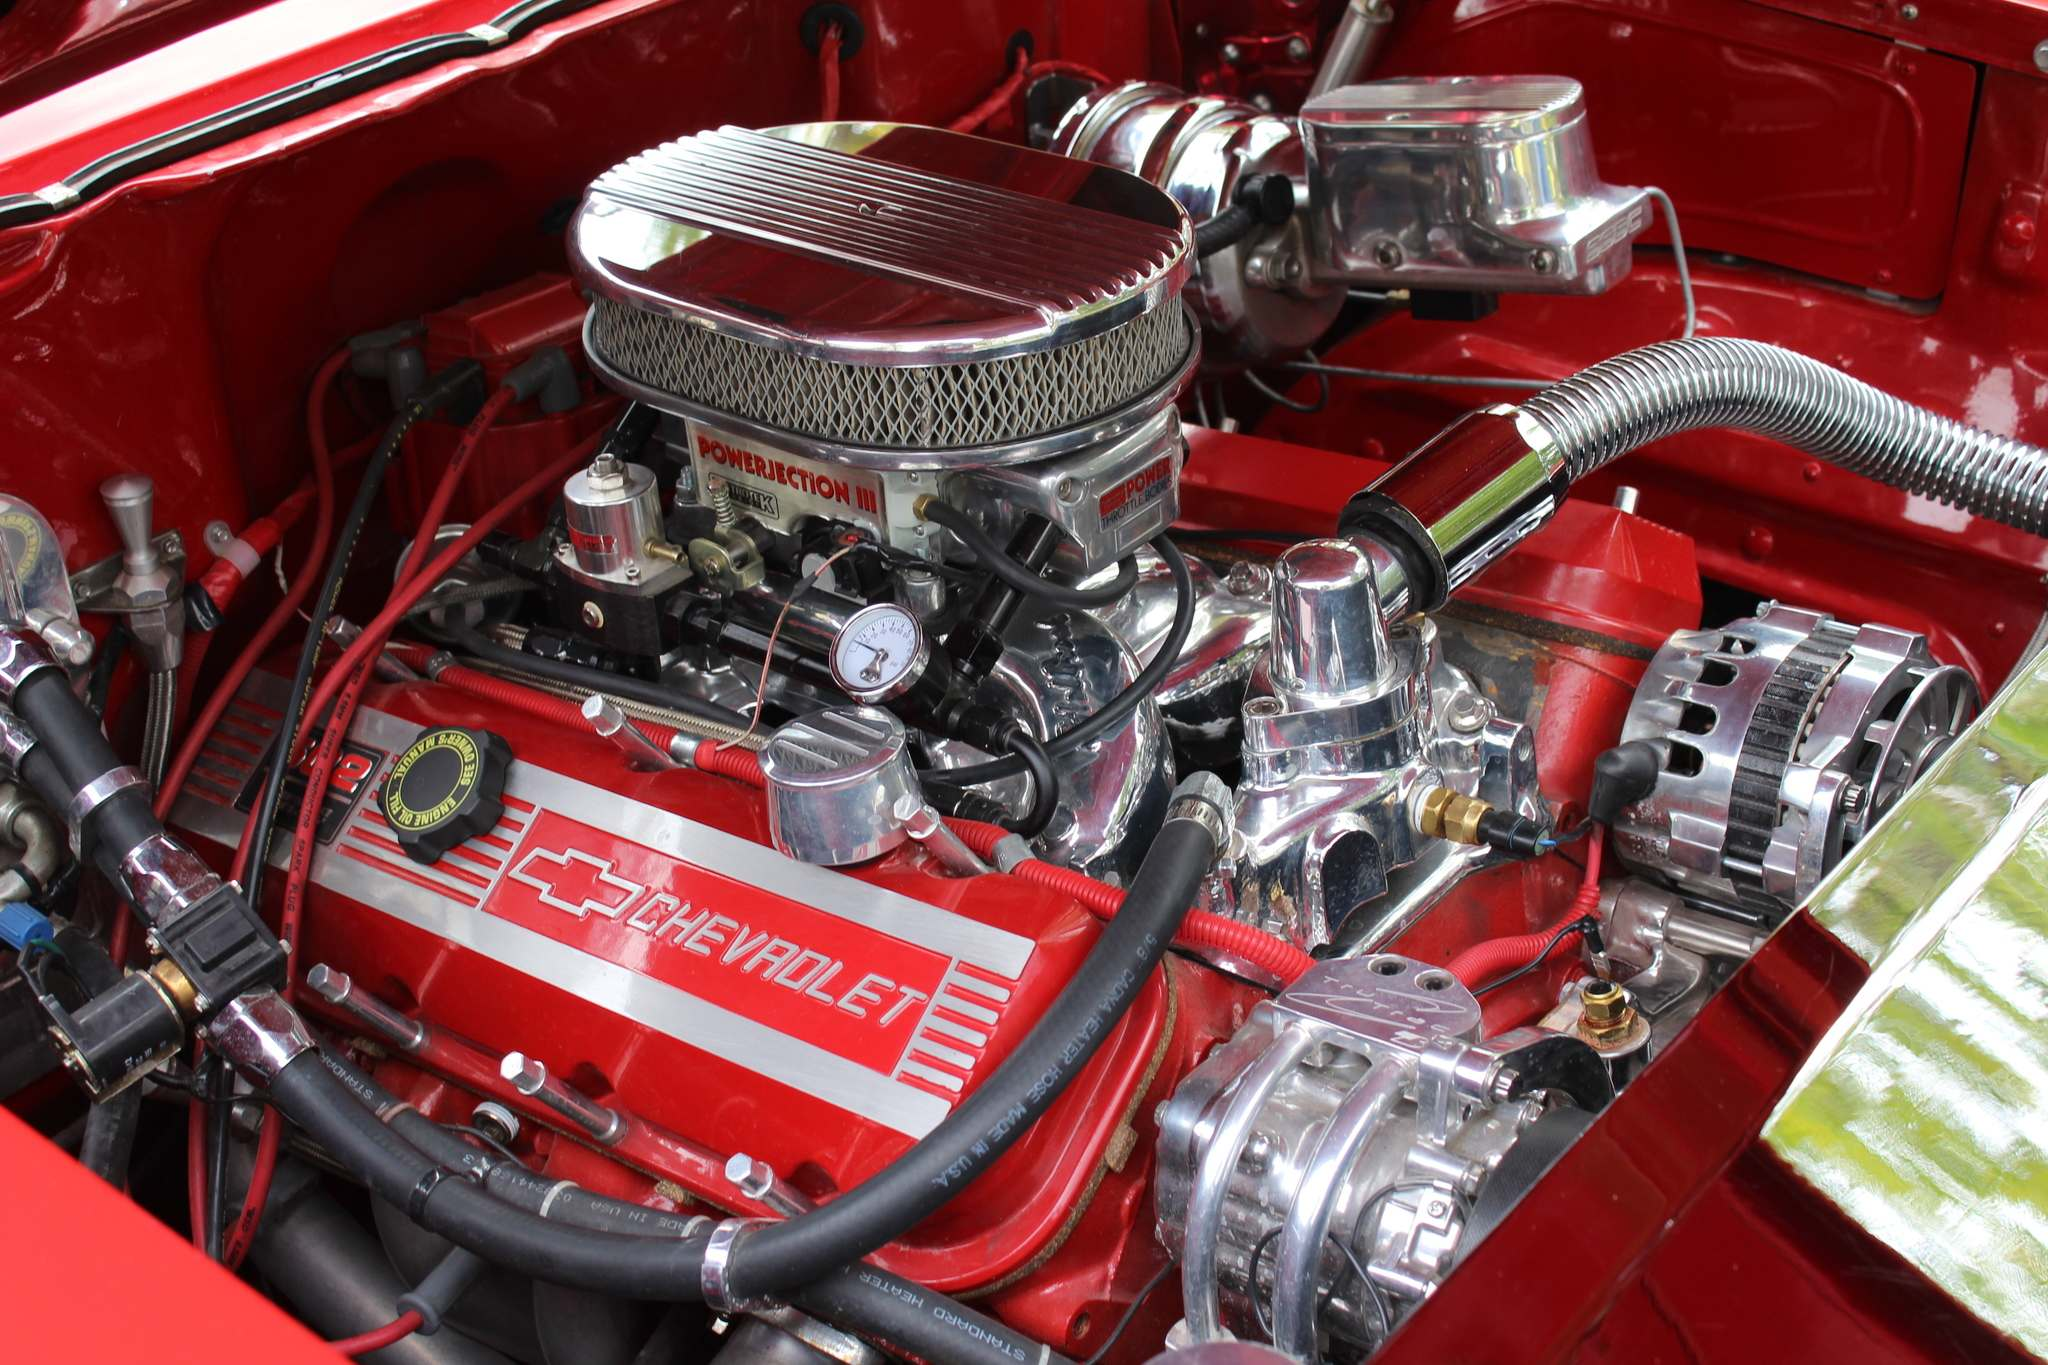 LARRY D'ARGIS / WINNIPEG FREE PRESSThe new engine is a ZZ 502-cubic-inch big block Chevrolet engine that puts out 508 horsepower.